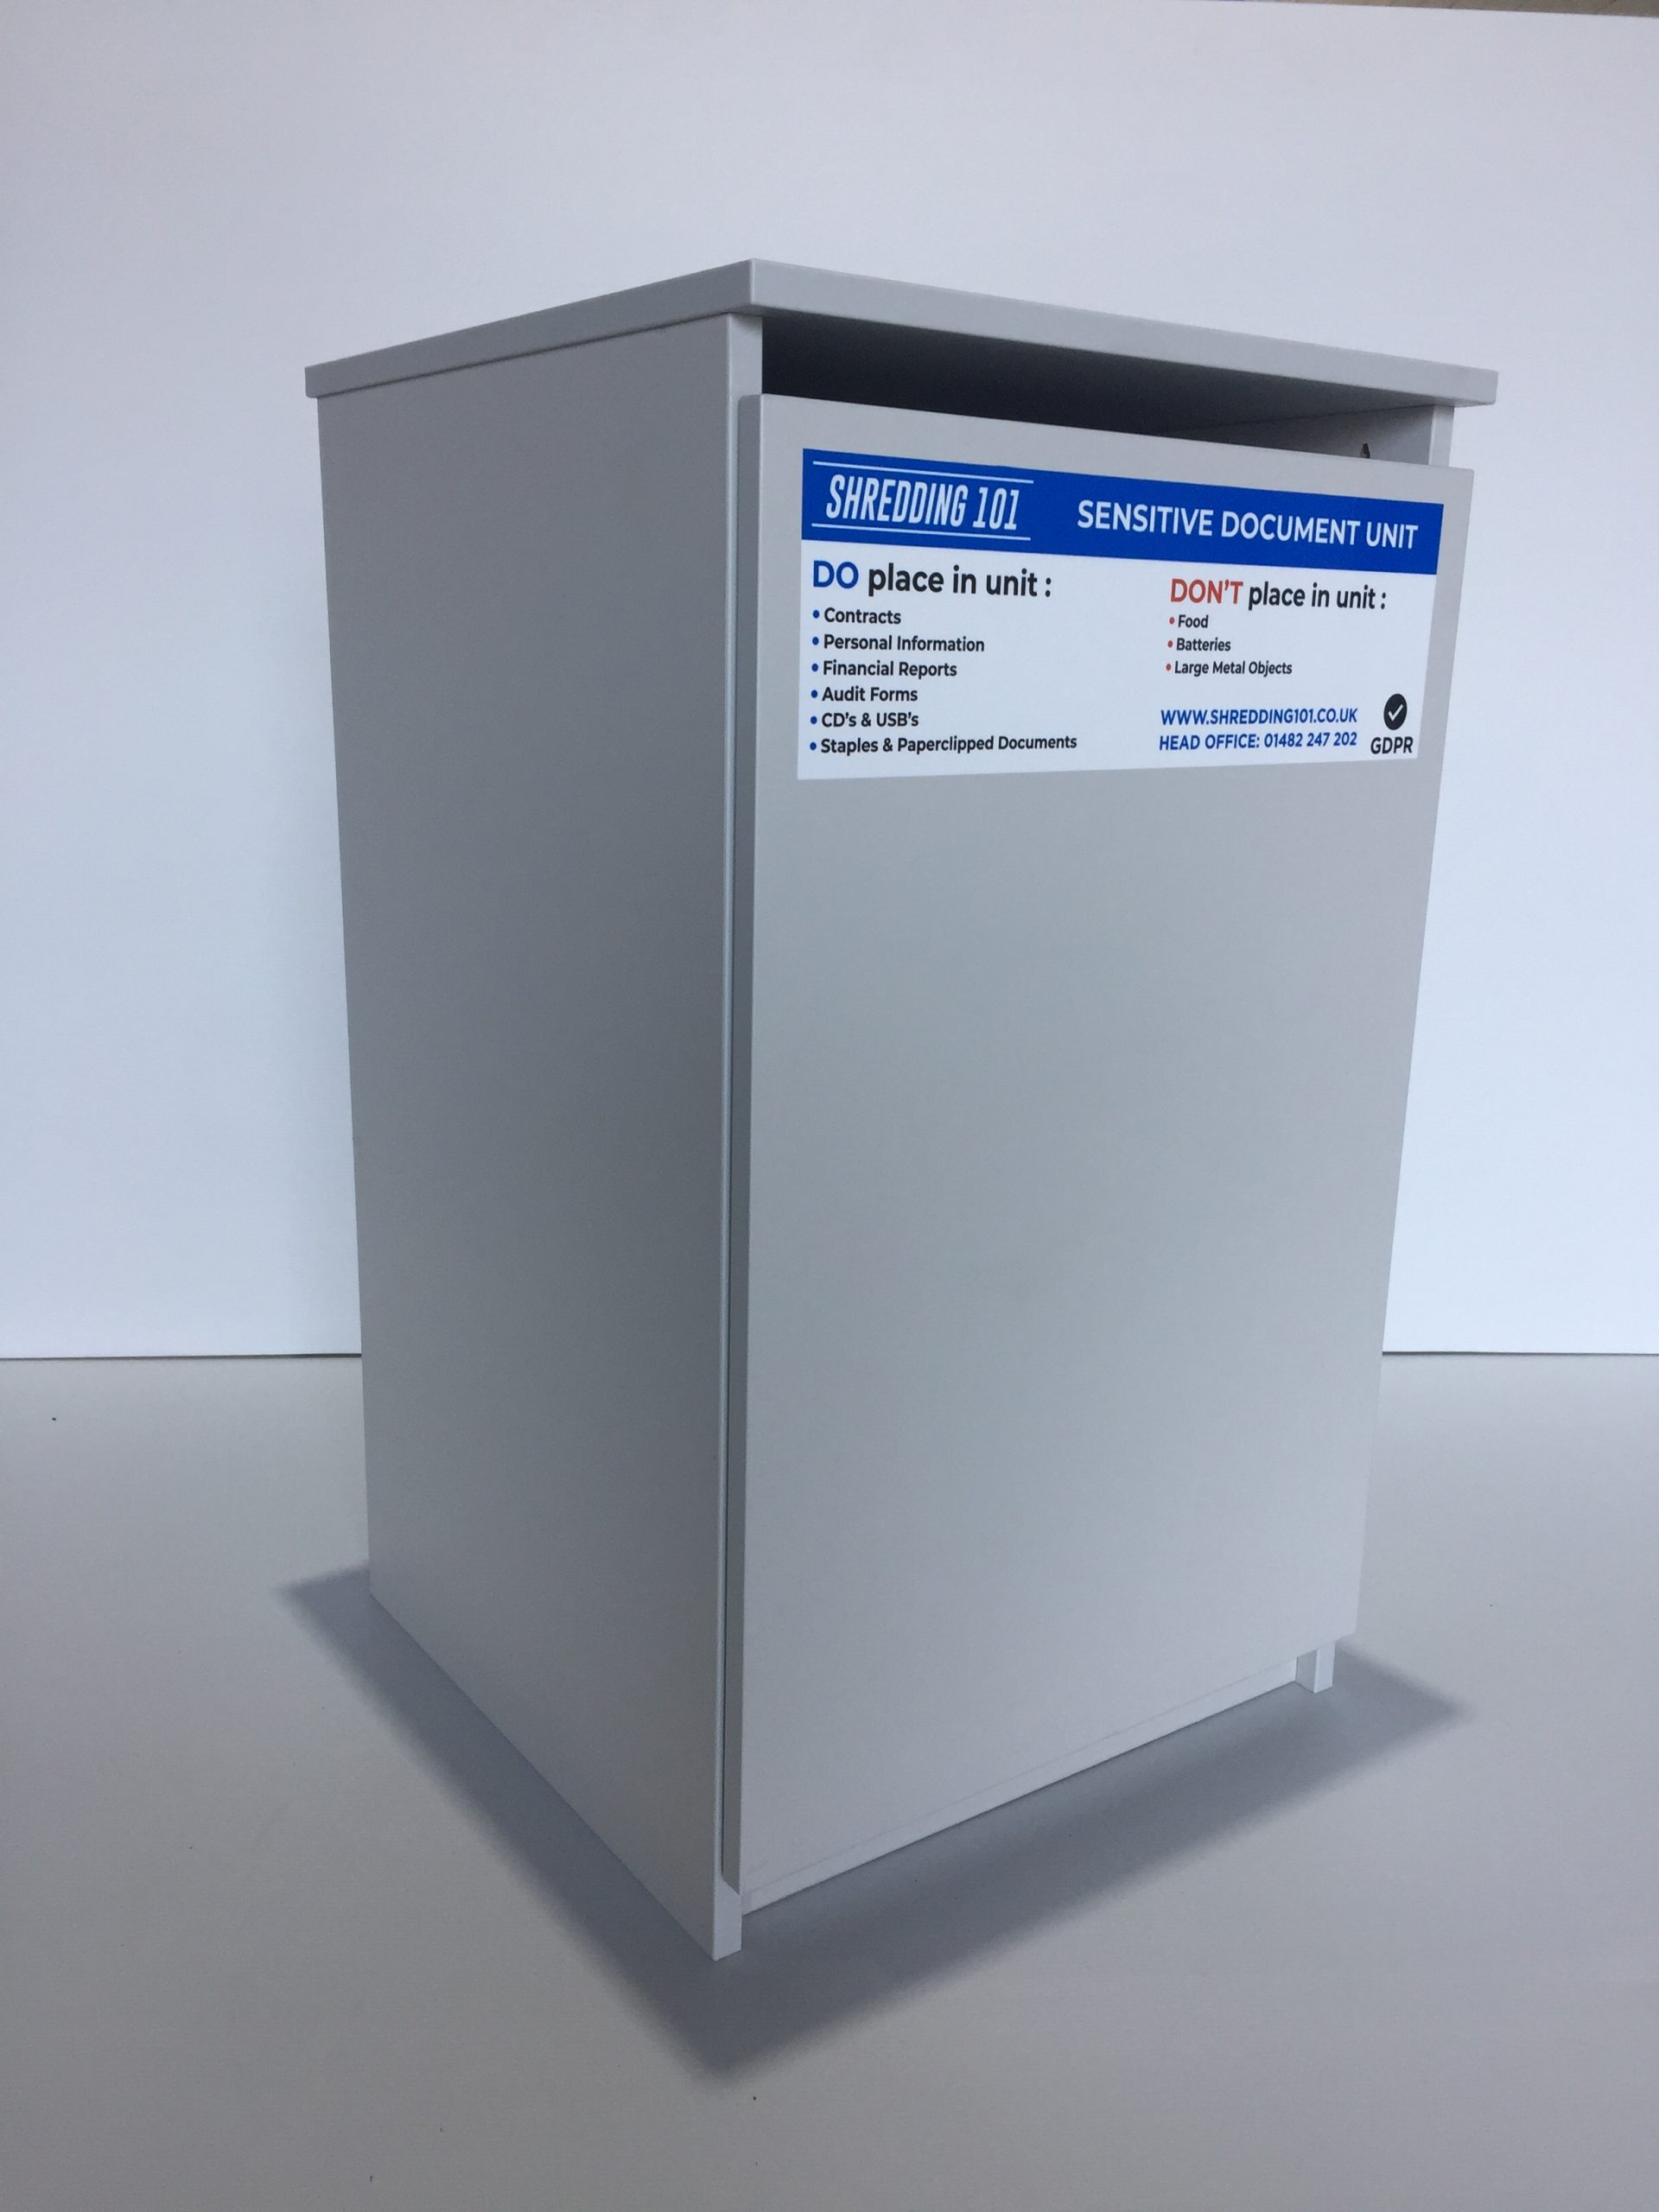 Keep Your Data Secure With A Confidential Waste Cabinet From Shredding 101